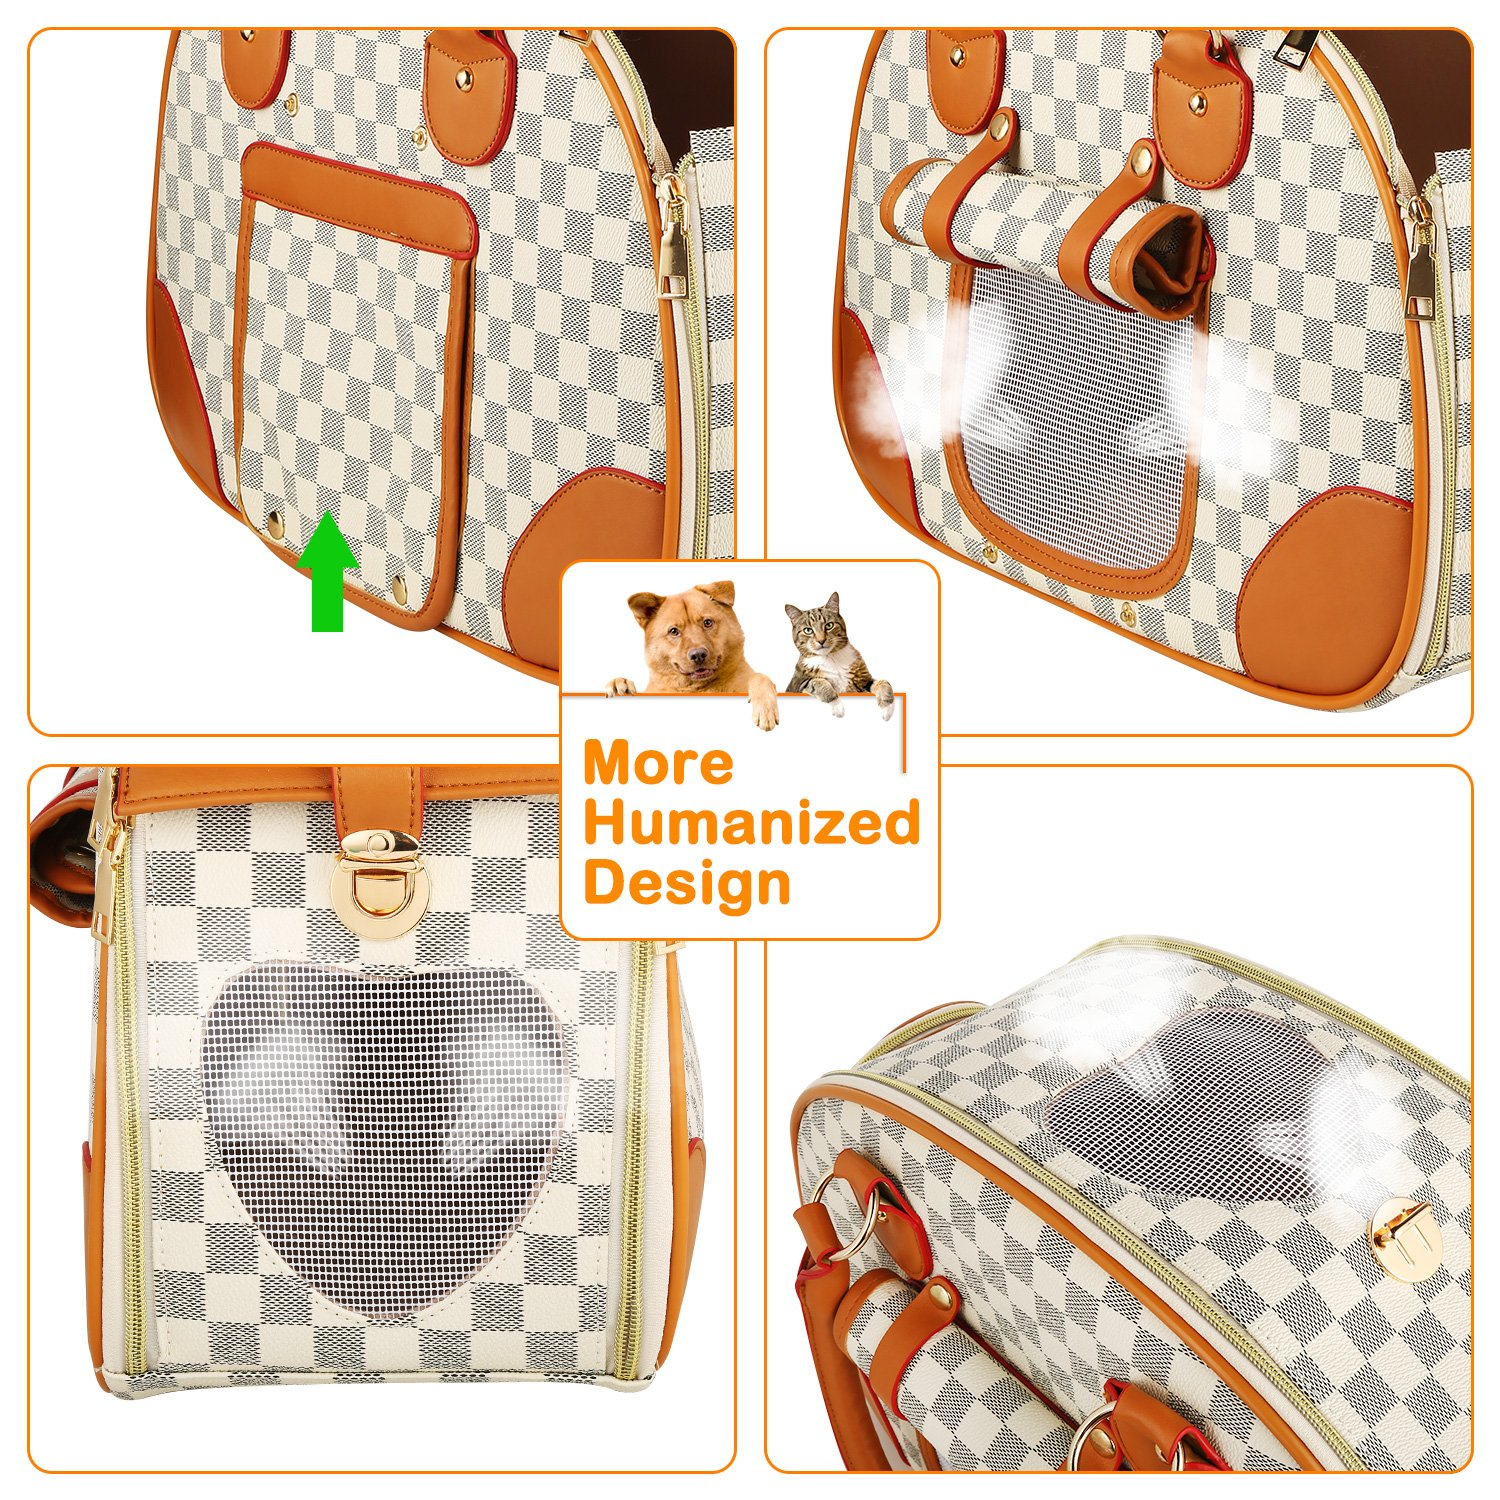 wot i Soft Sided Pet Carrier, Cat Carrier Dog Carrier Airline Approved Pet Carrier Suitable for Small Dogs and Cats, Medium Cats and Dogs, Puppy, Kittens, Small Animals, Luxury PU Leather Travel Bag by wot i (Image #4)